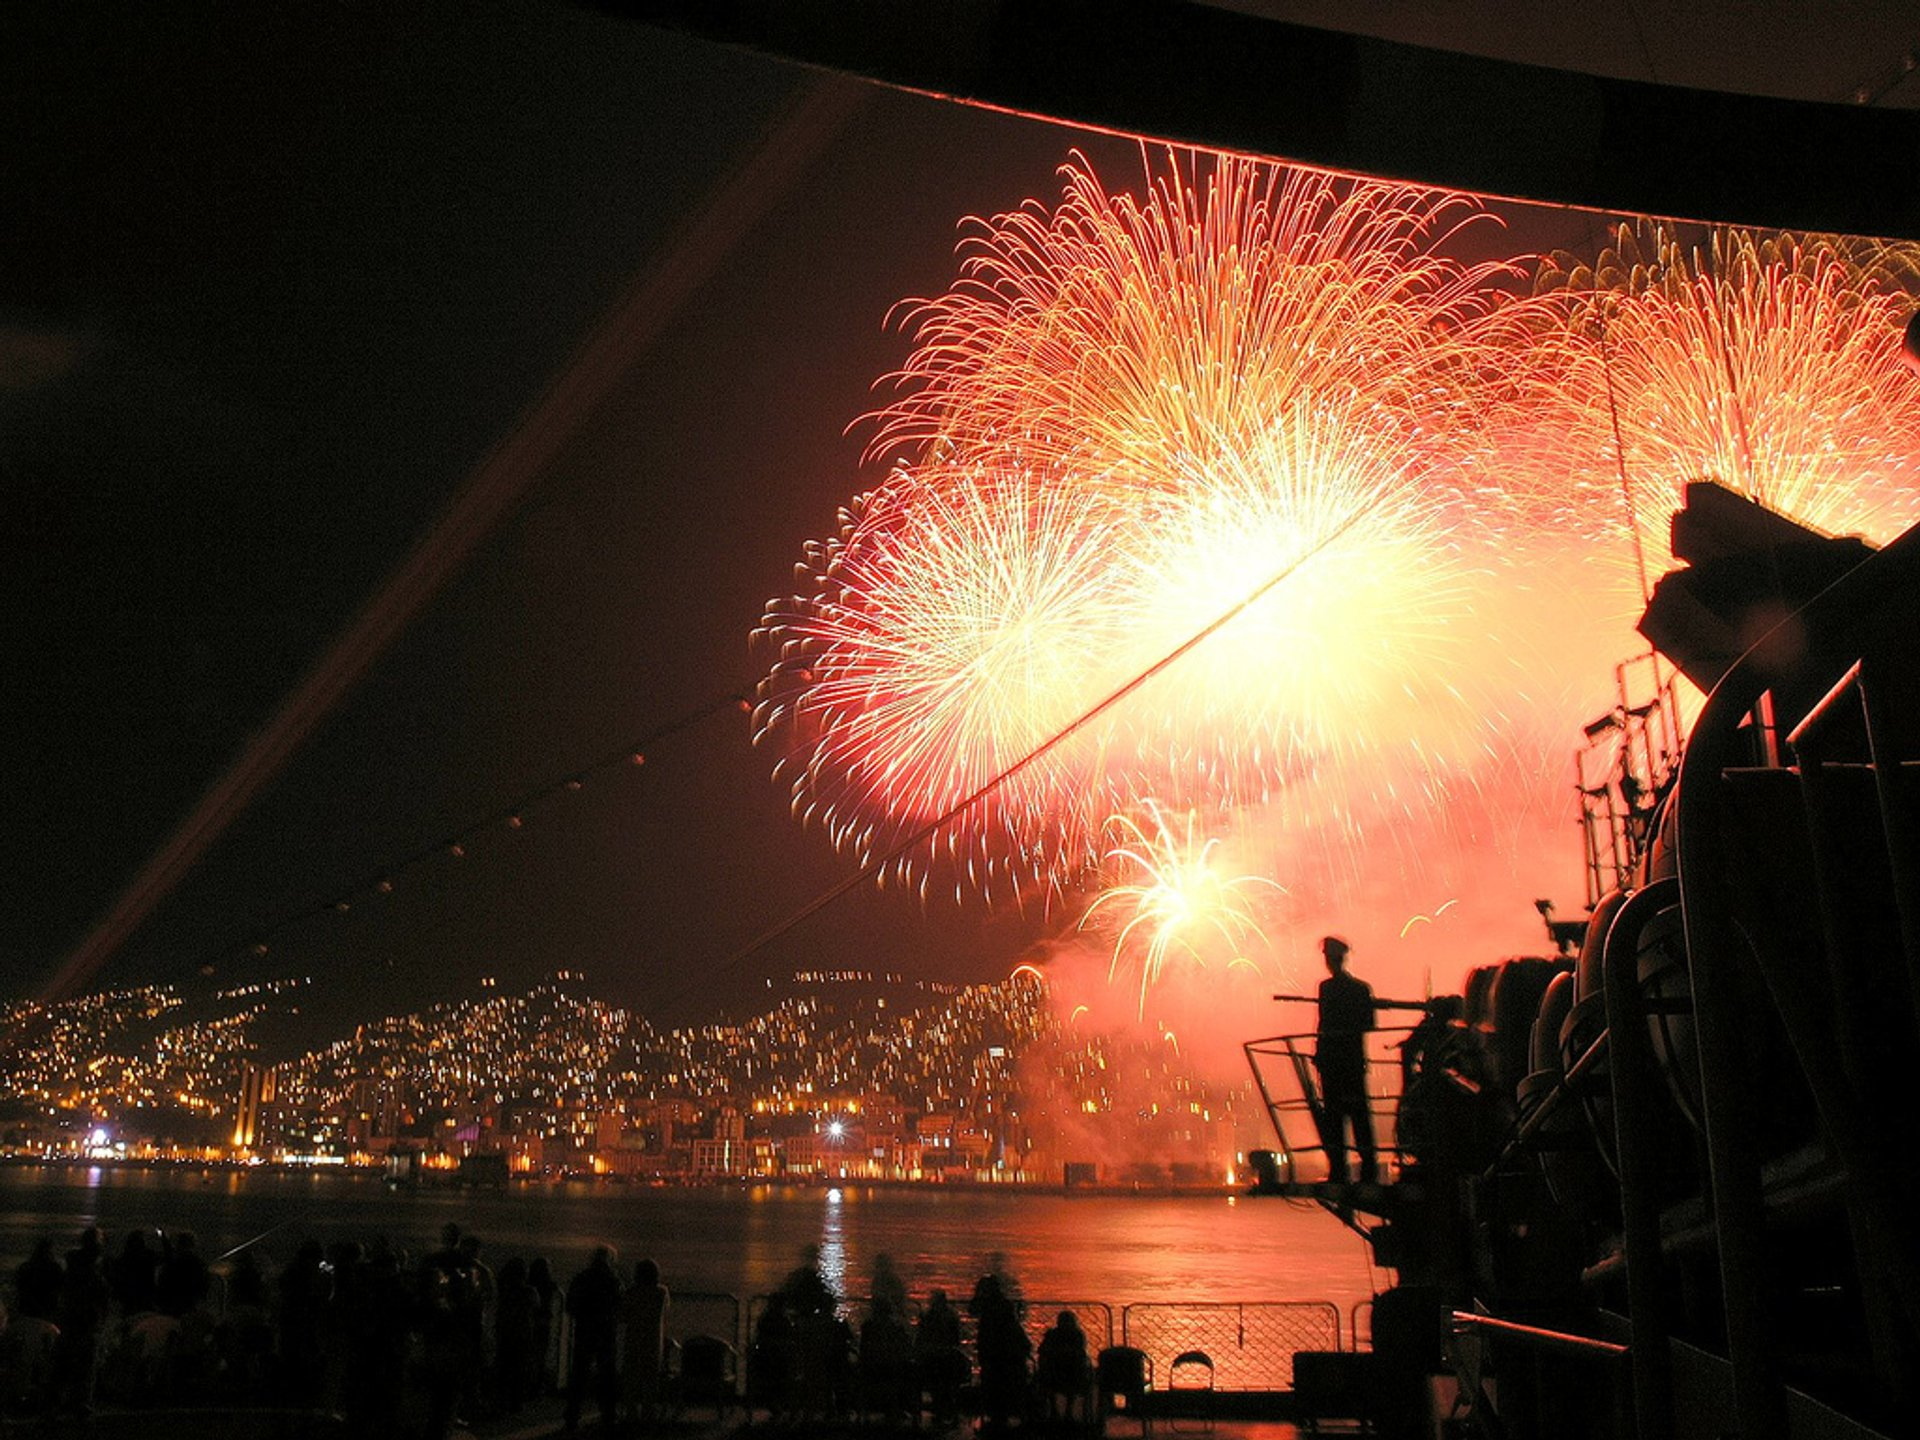 New Year Fireworks in Valparaiso in Chile 2020 - Best Time